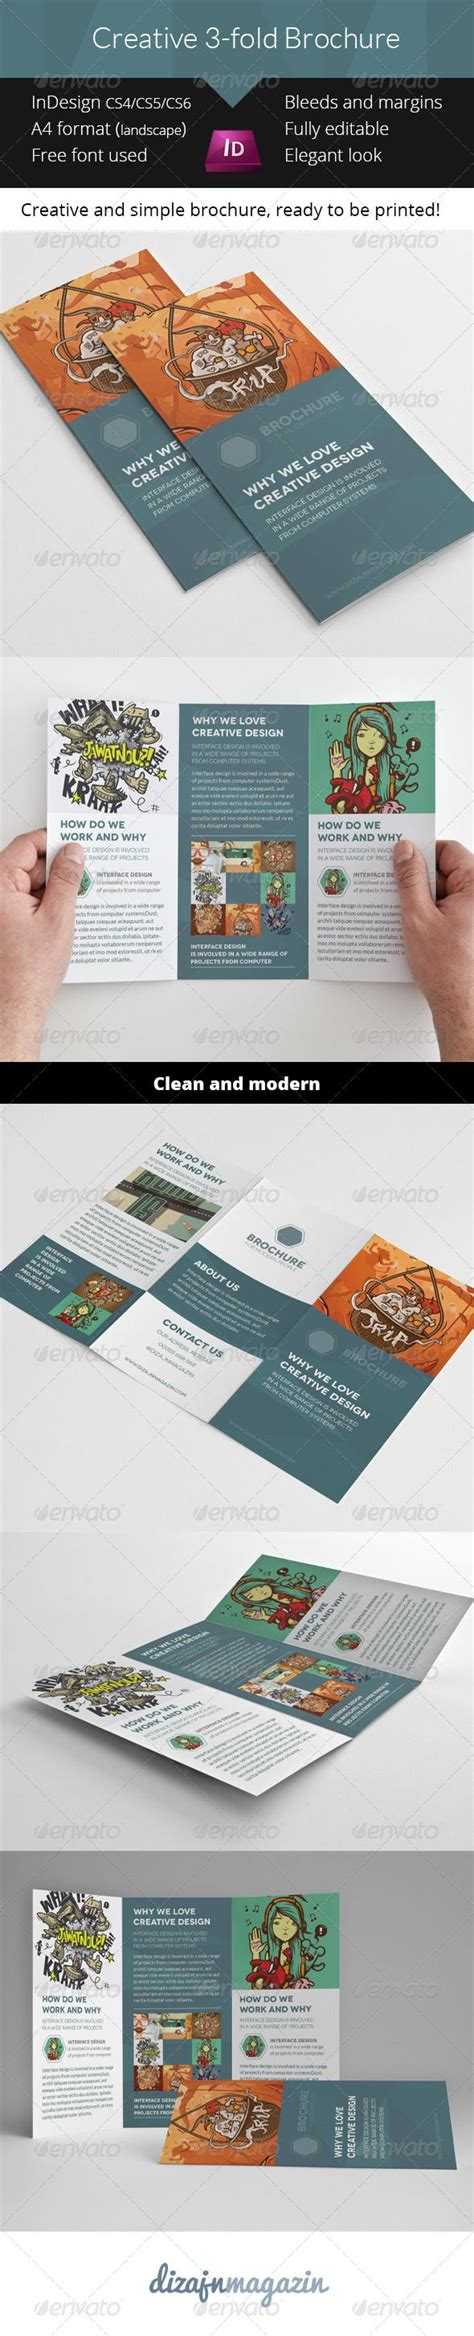 3 fold brochure template usefullhand net pin by josip vrbic on design pinterest